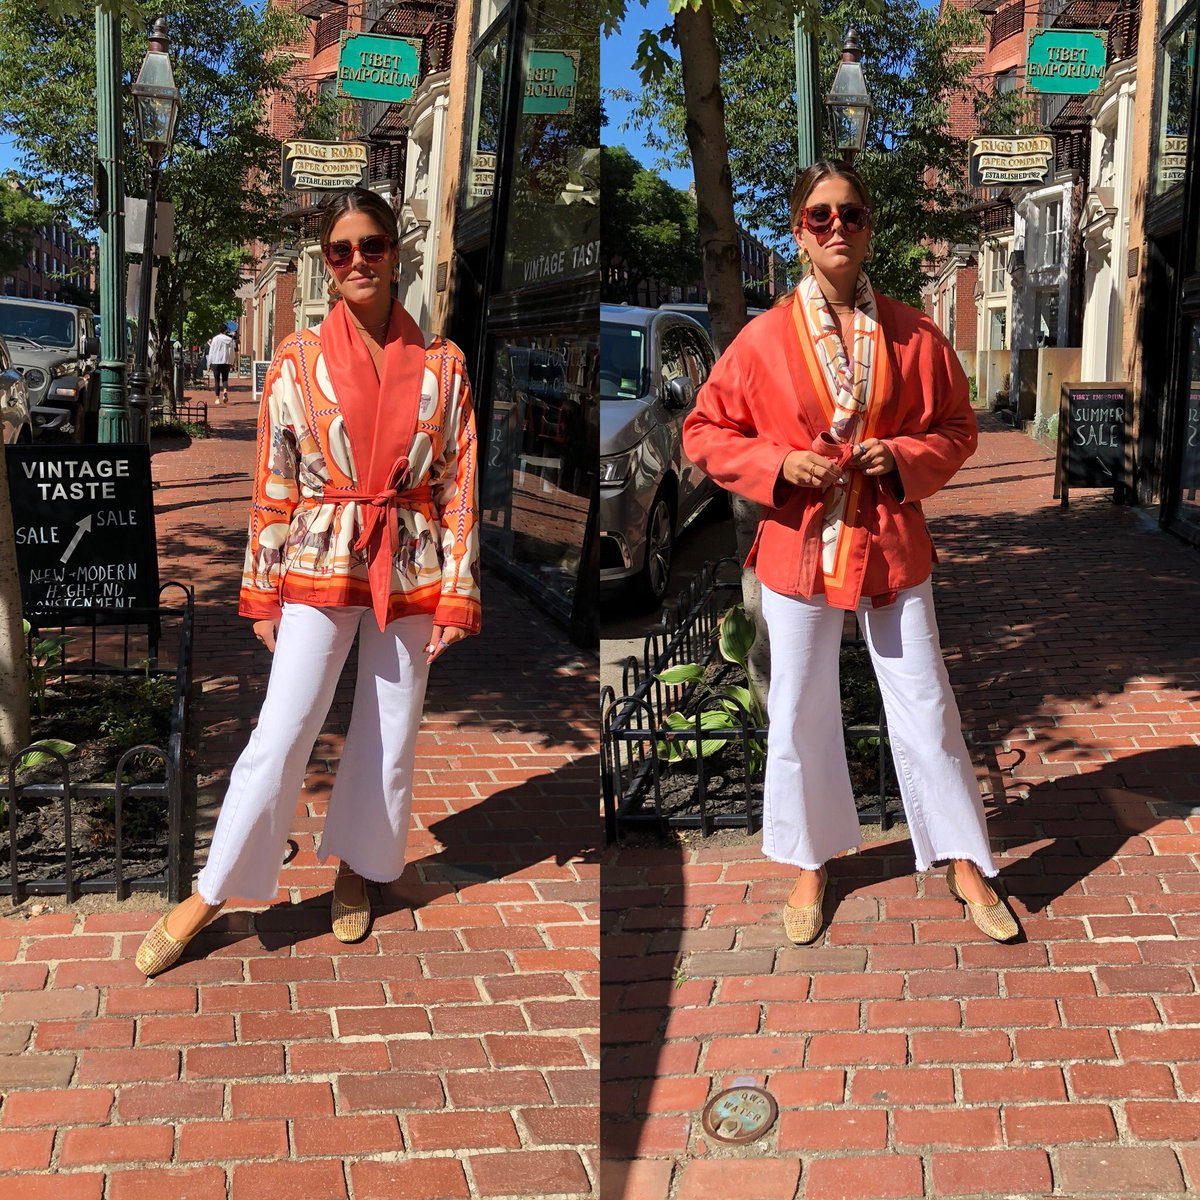 Looks like #twins but it's #Linsey in both pictures #looking #marvelous in this #reversible #hermes #silk & #cotton #jacket #chanel #jeans & #triwa #klara #shades #looksxlinsey                        Click our website Product page for sizes & prices https://t.co/IYcIHWuspg